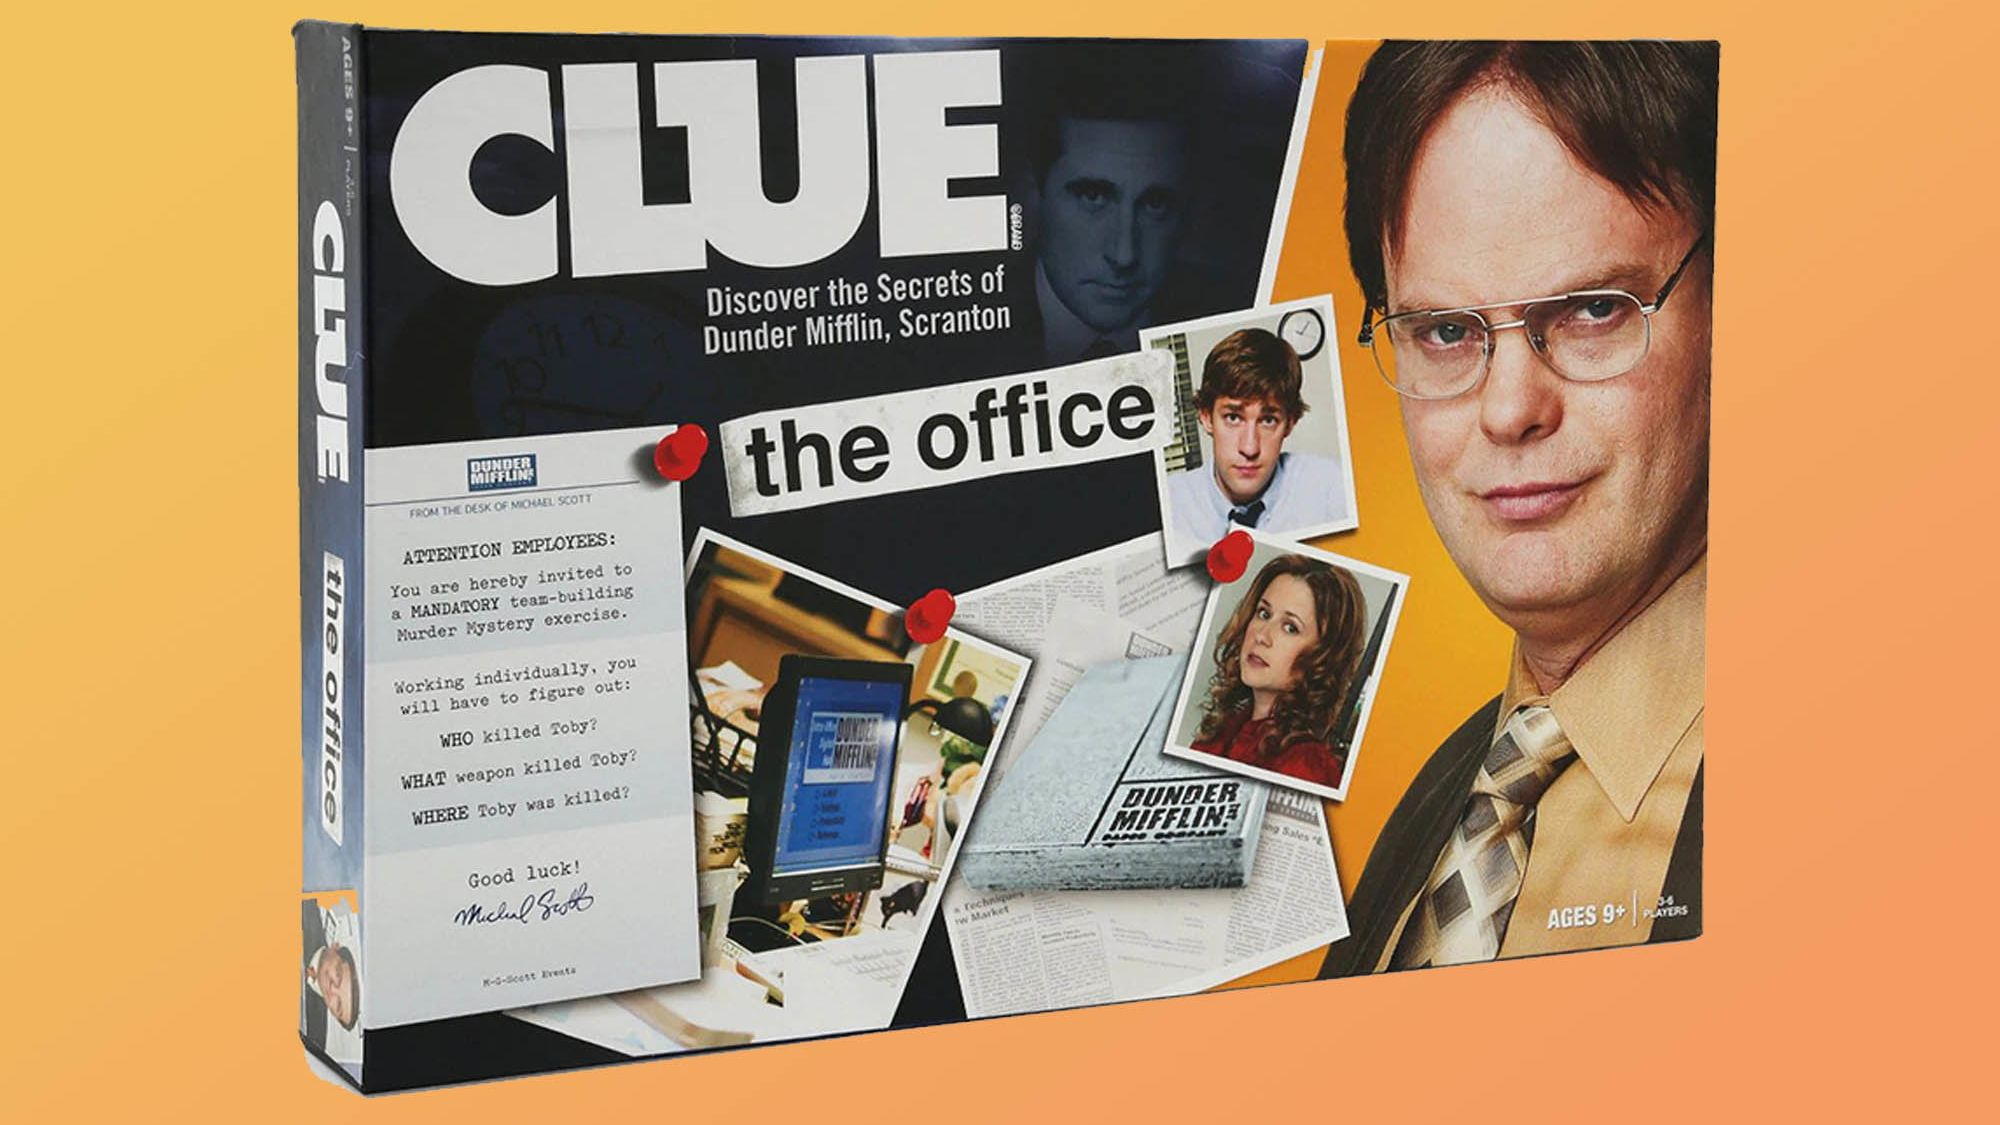 This New The Office-Themed Clue Board Game Lets You Solve the Murder of Toby Flenderson